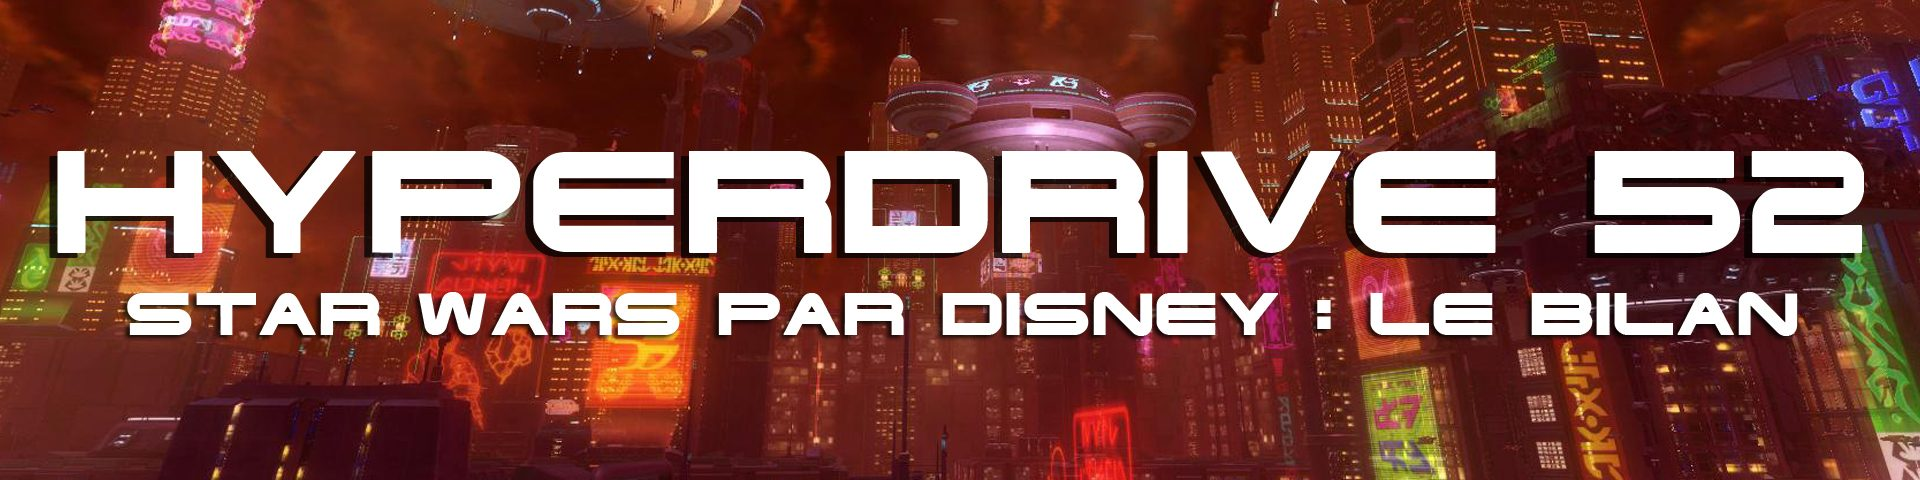 hyperdrive podcast le bilan de Star Wars par Disney